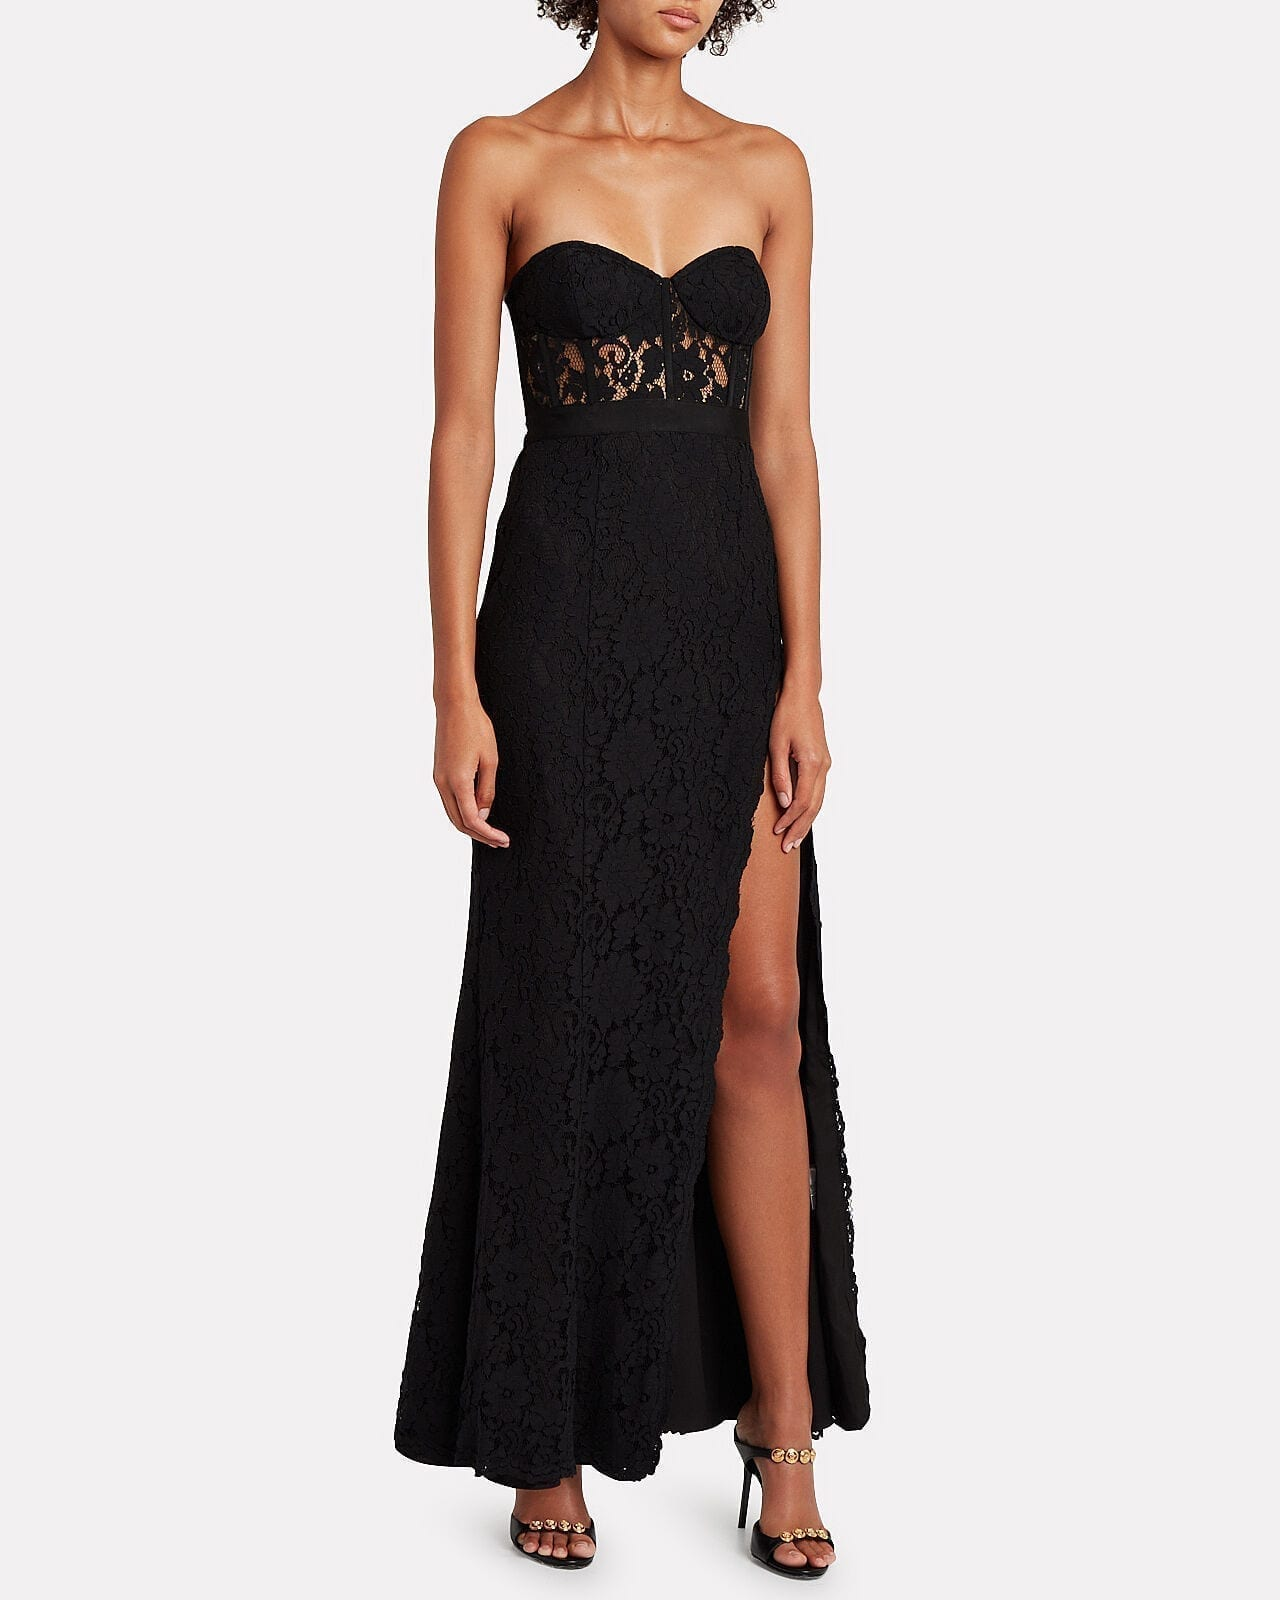 FAME & PARTNERS Mariposa Strapless Lace Gown